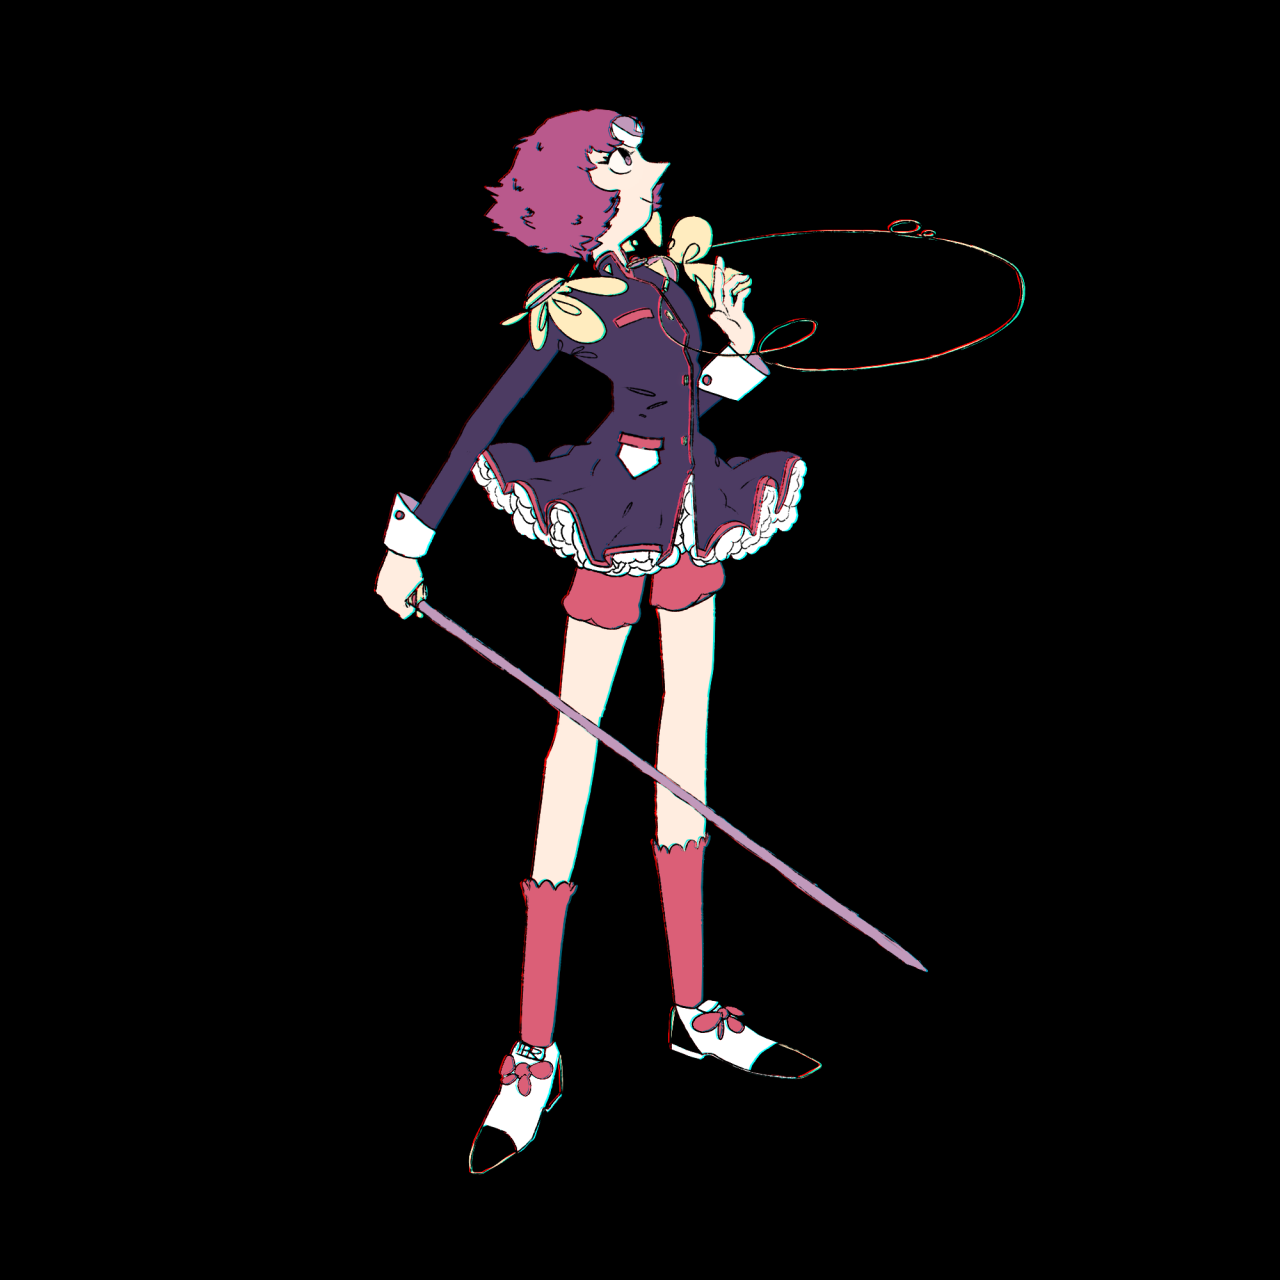 @riibrego This is it! I love watching Revolutionary Girl Utena so I did an au thing for Pearl.Your awesome pearls really inspired this :D